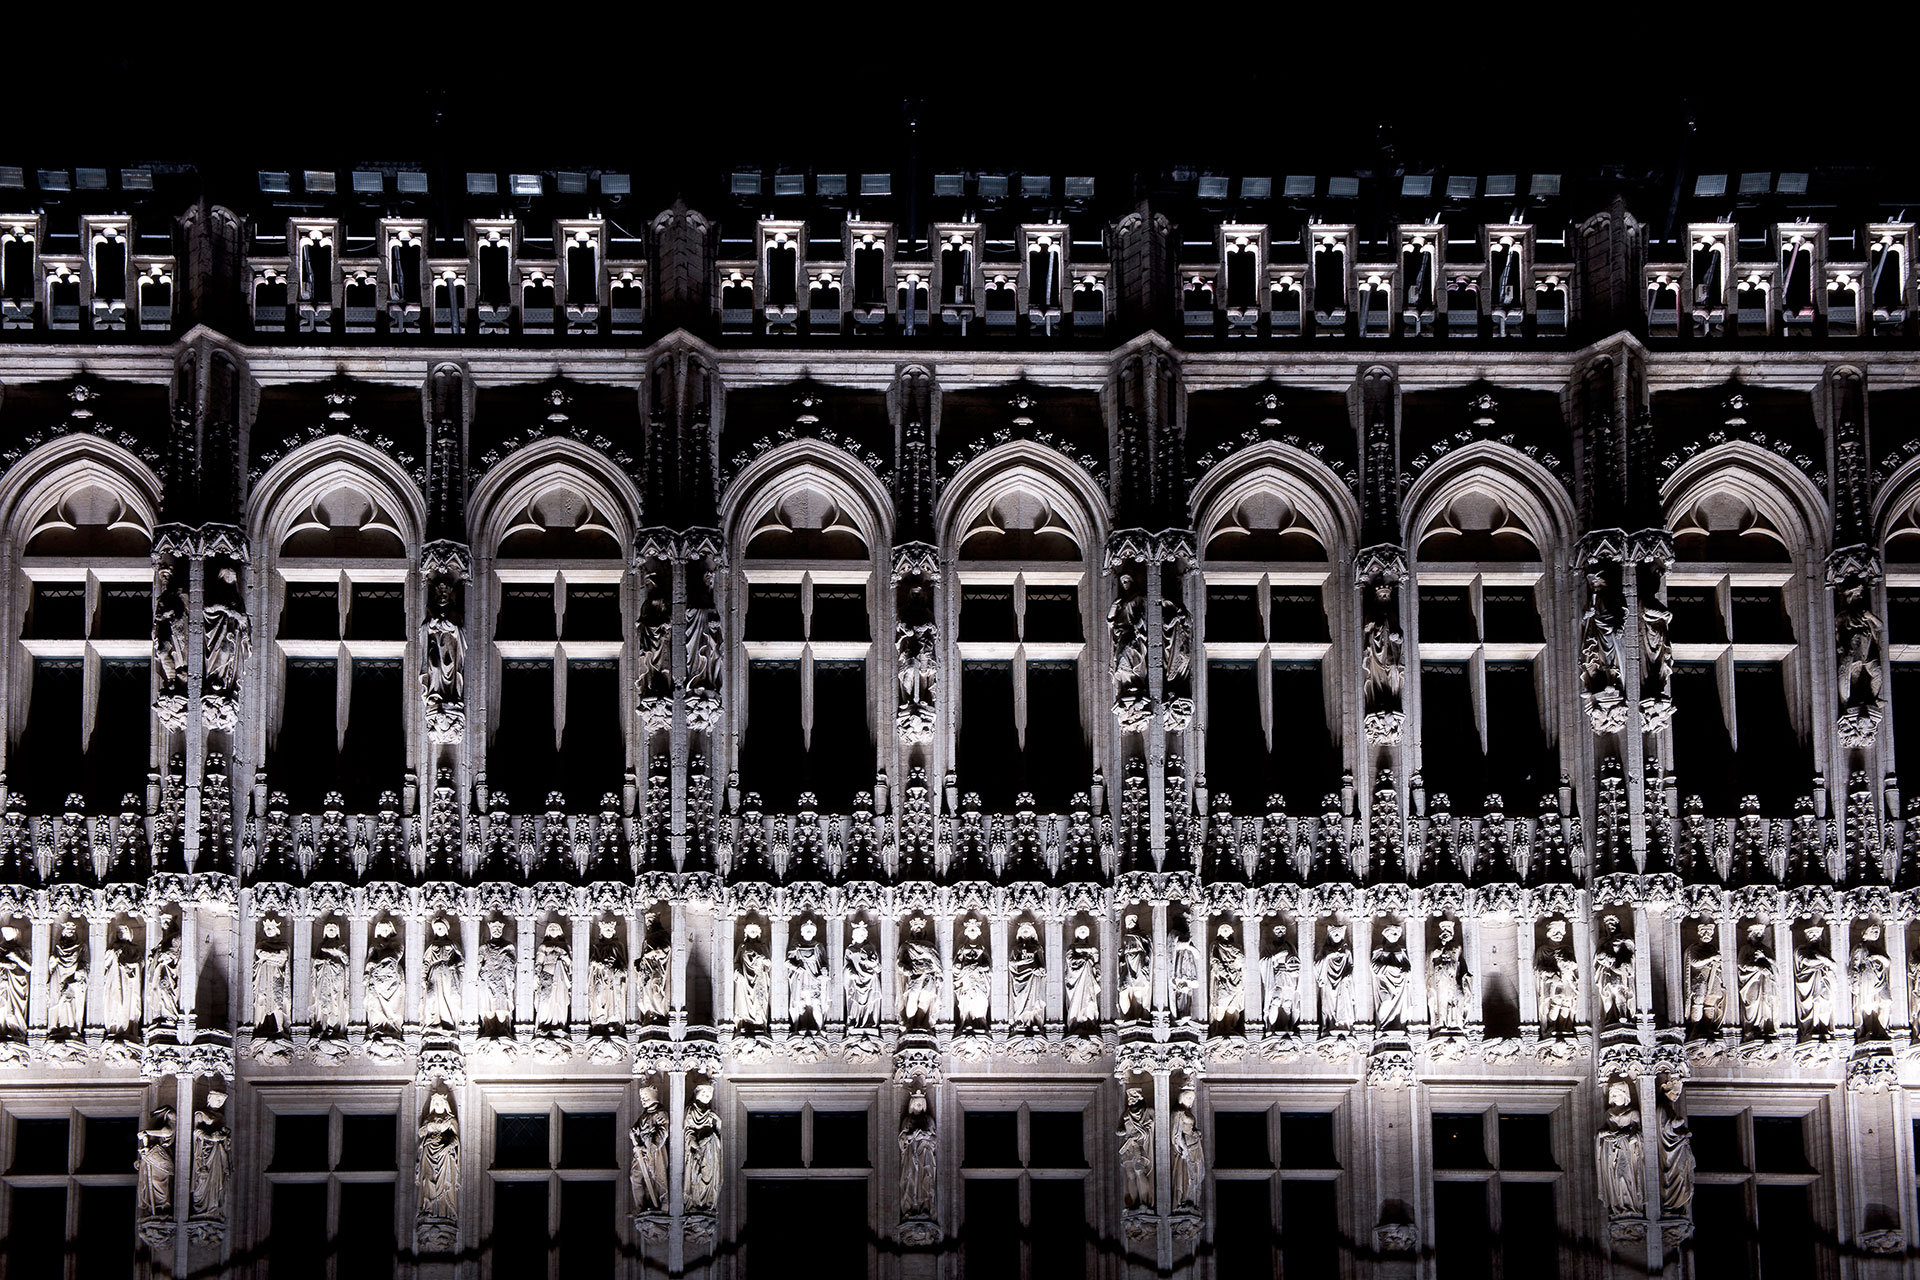 LED floodlights highlight the architectural details of the Gothic façades on Grand Place